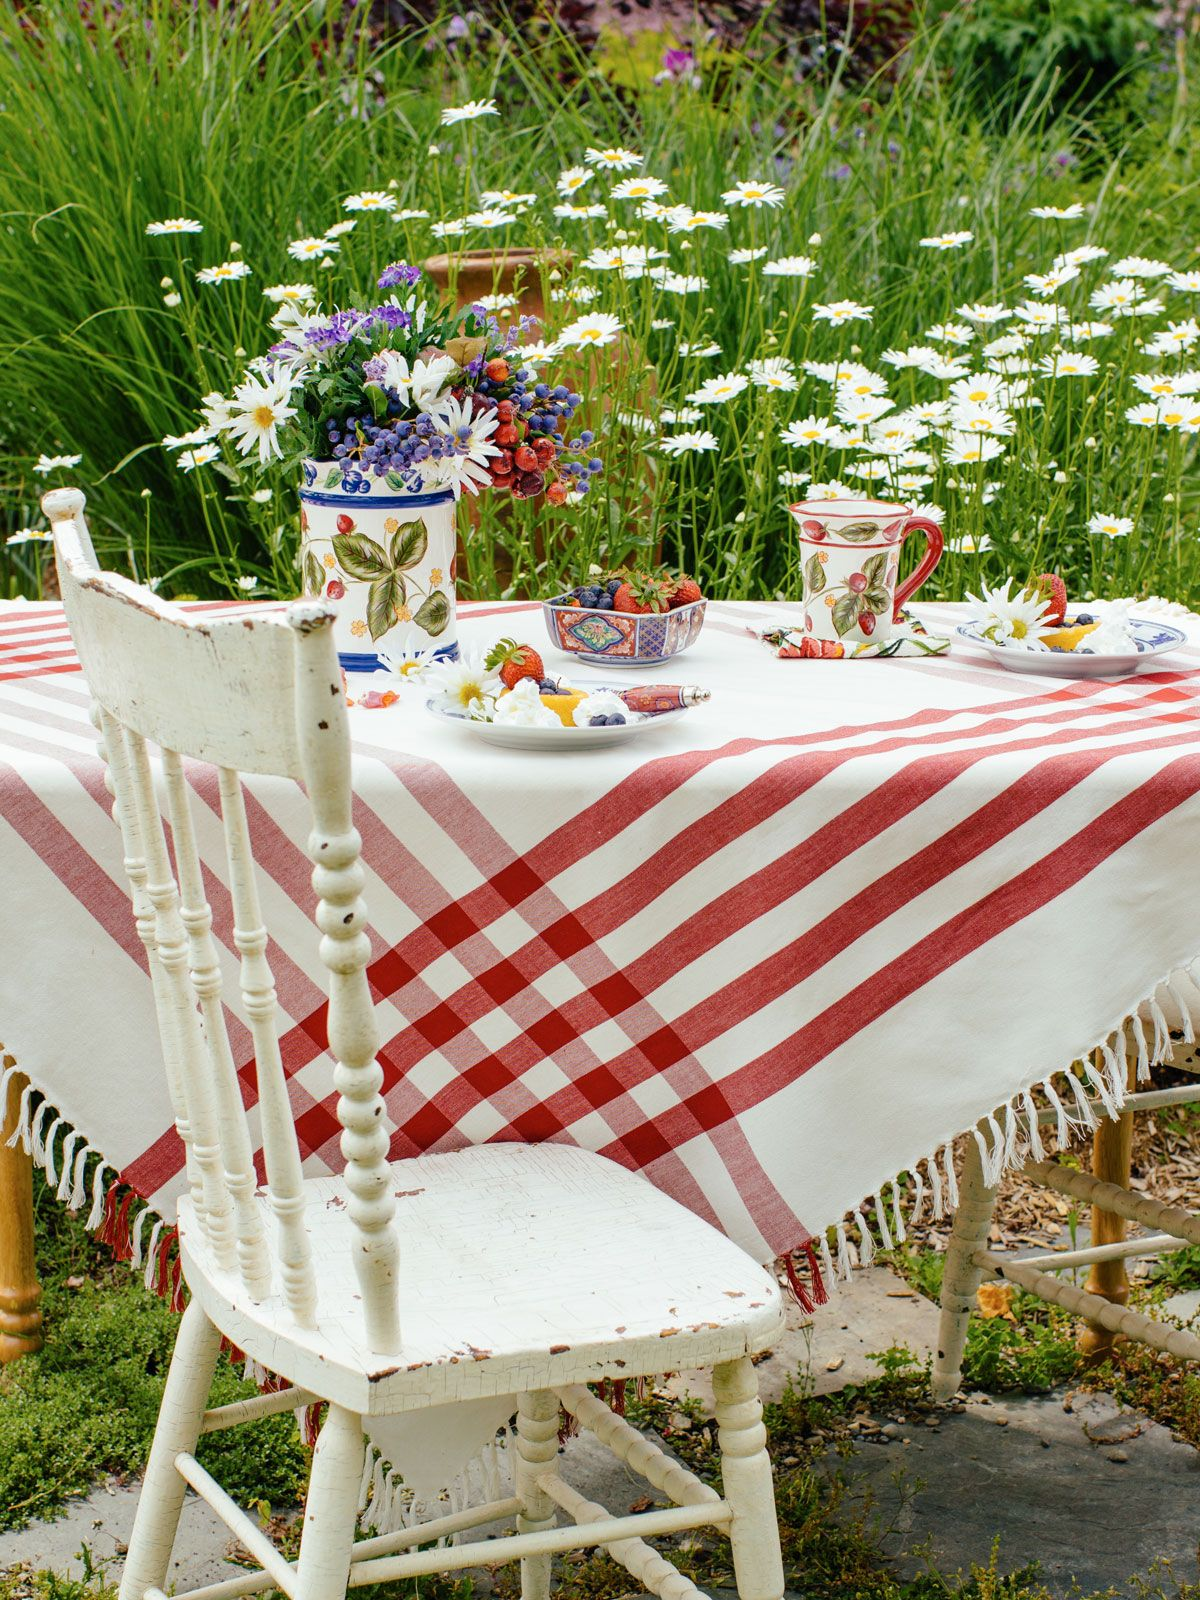 The 'Happy picnic' tablecloth is manifested in cheerful ...